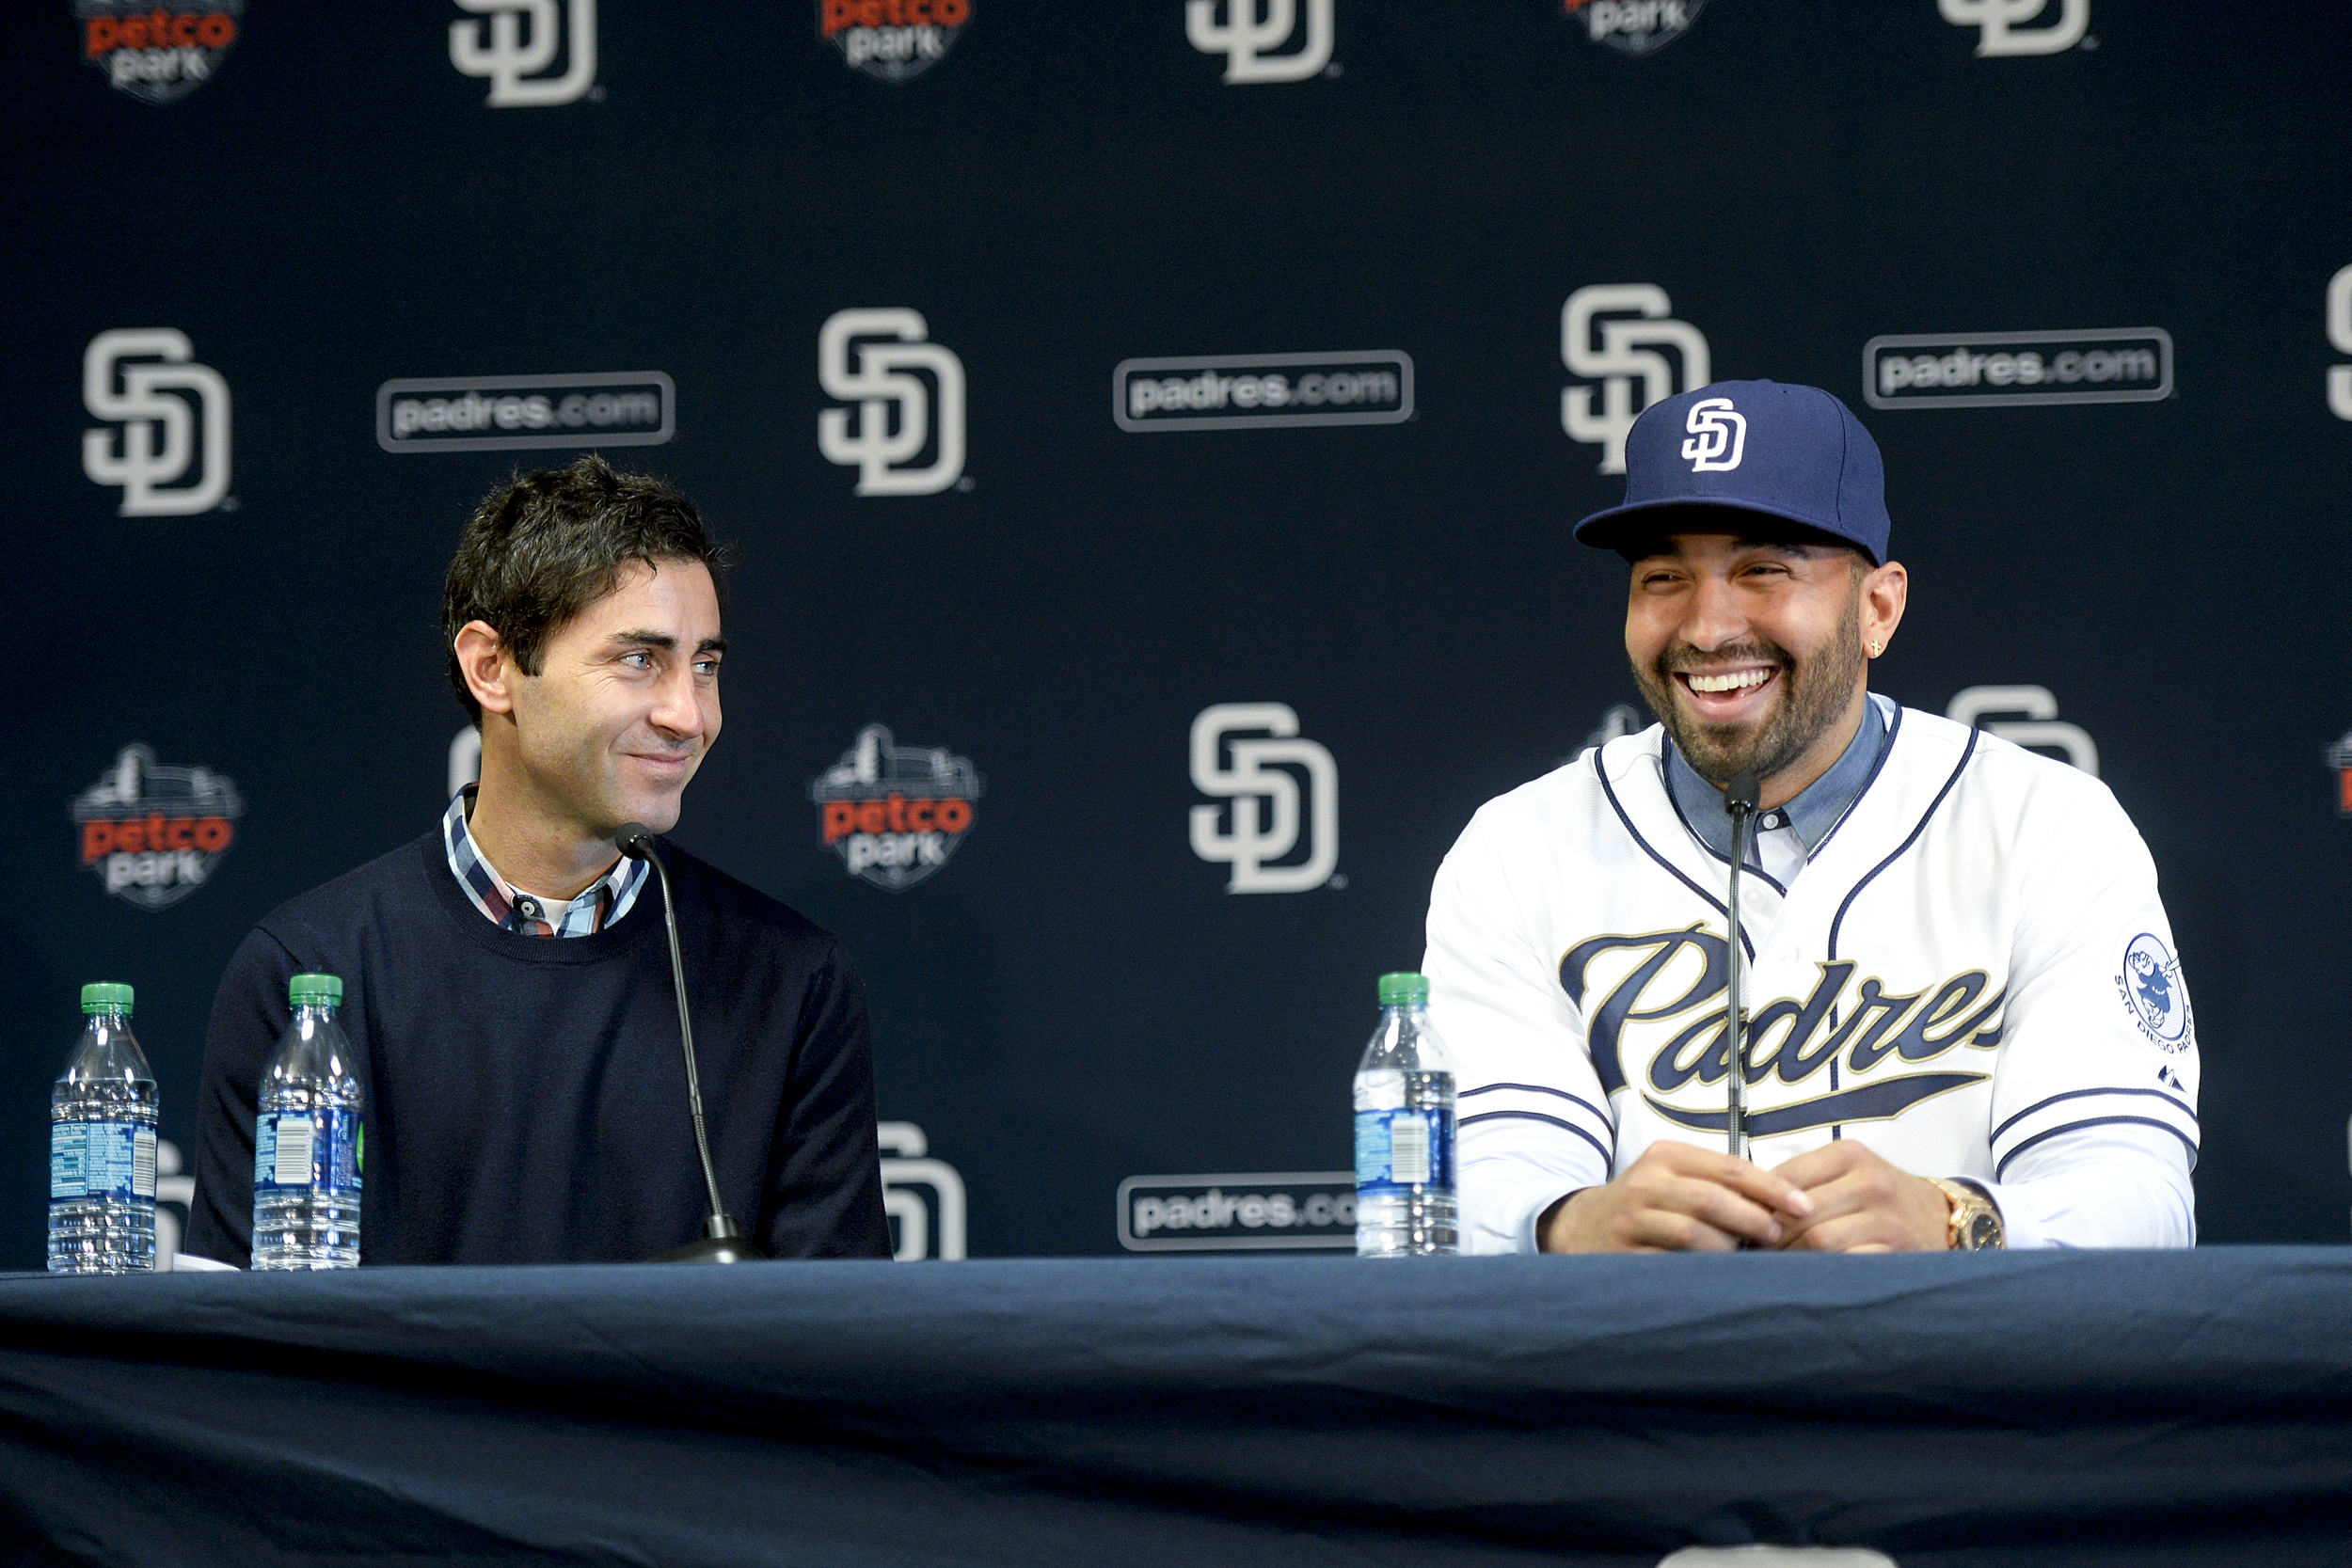 A graduate of Walt Whitman High School and now general manager of baseball's San Diego Padres, A.J. Preller, left, is pictured during a press conference where it was announced the team traded for all-star outfielder Matt Kemp, right.